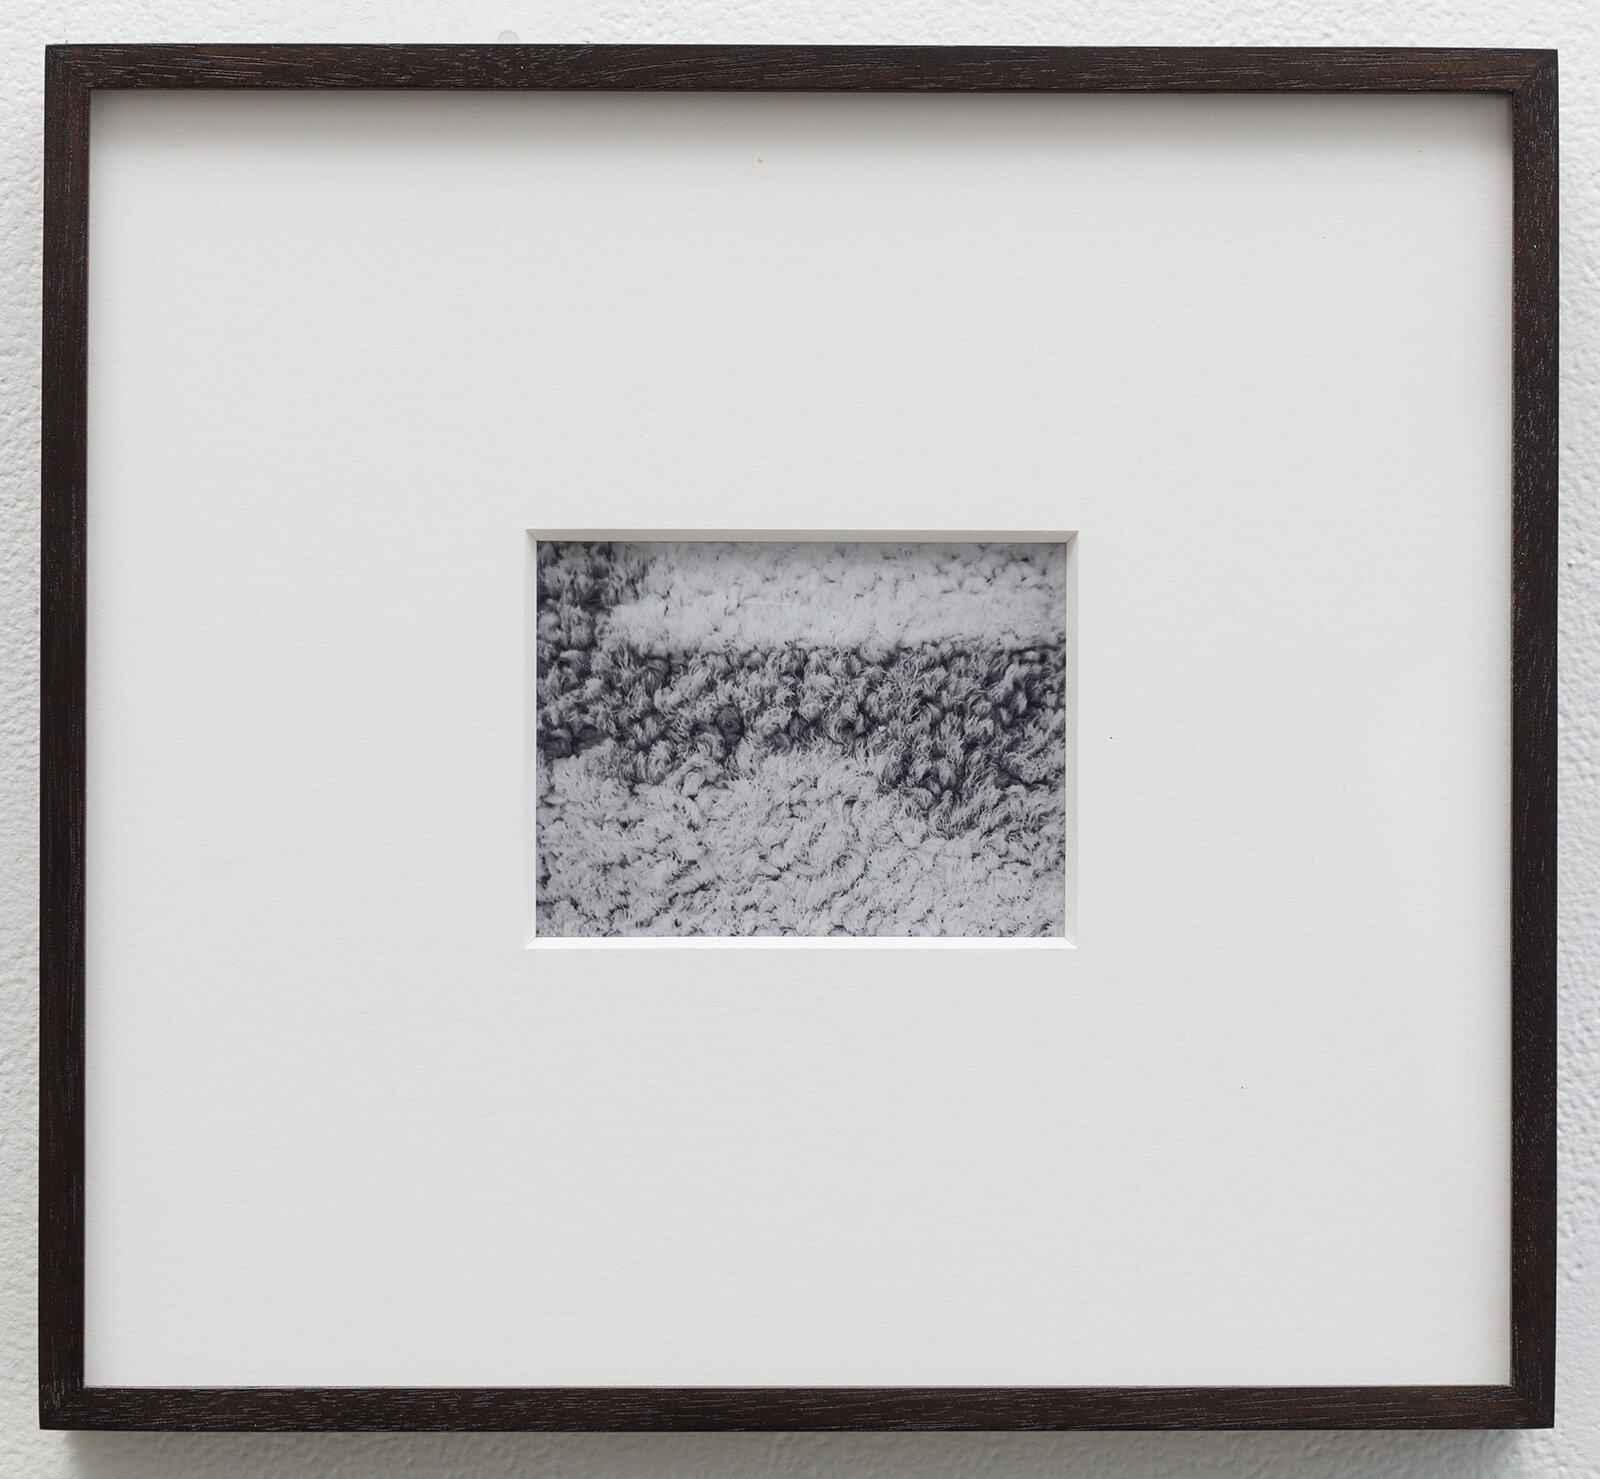 A Footnote , 2019  2.875 x 3.75 inches  Black and white instant film